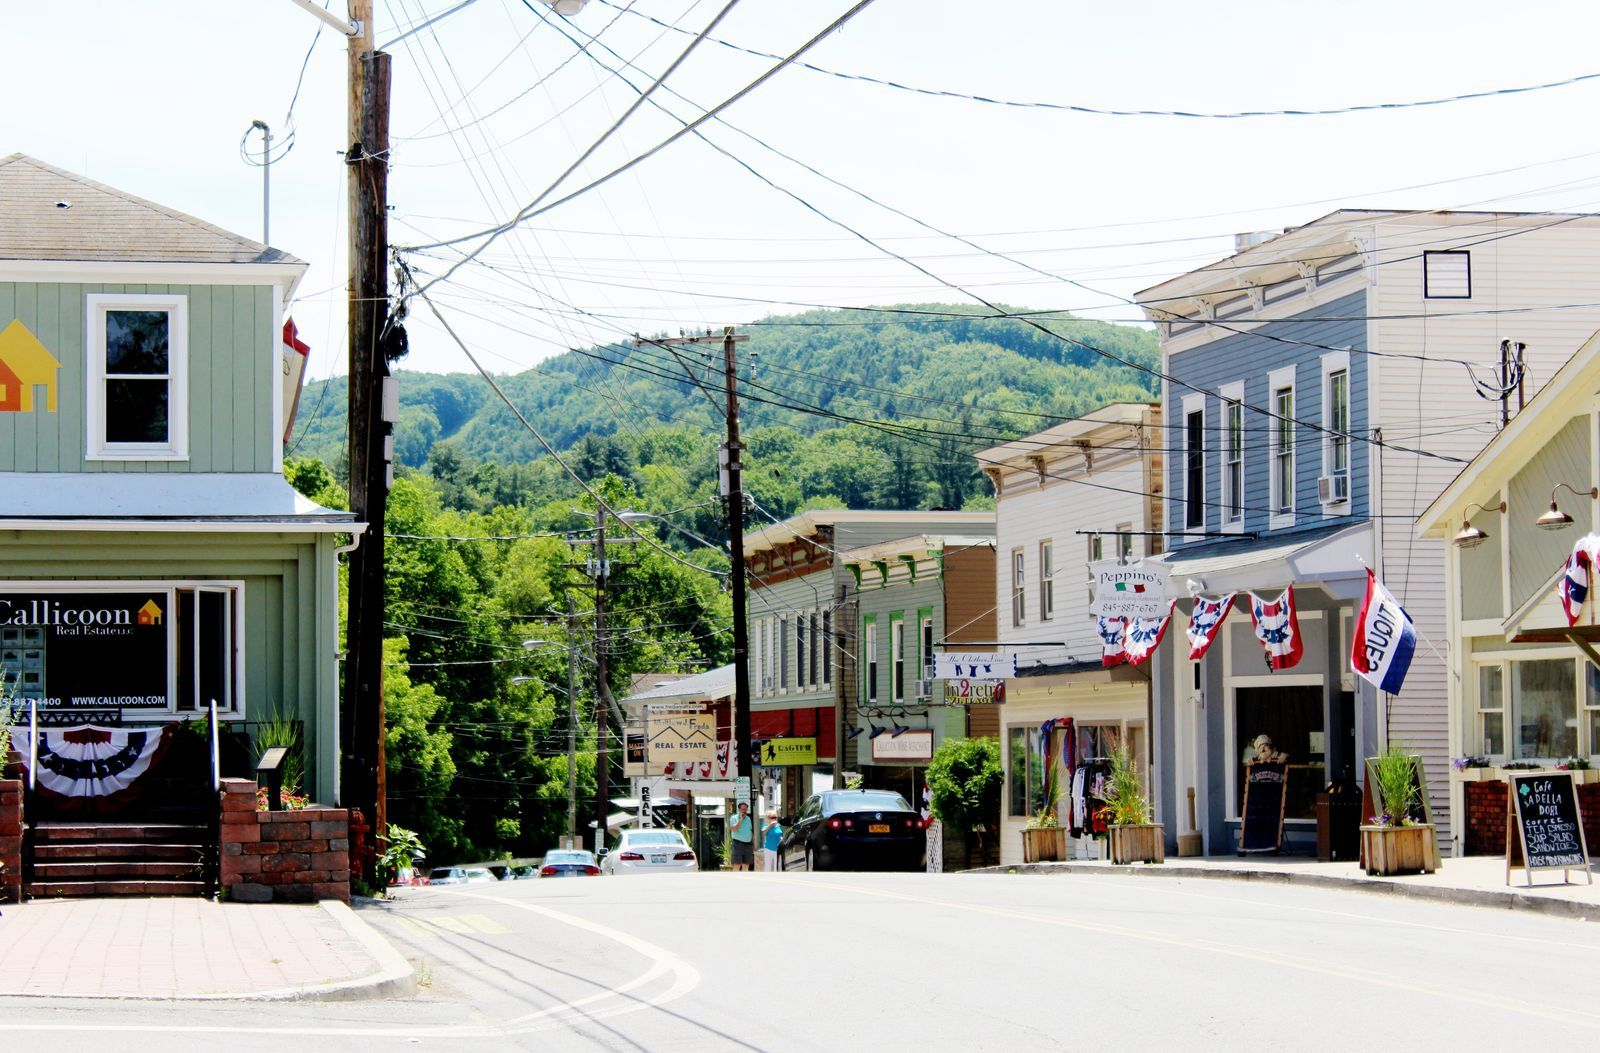 The 25 Best Small Town Main Streets In America To Visit Asap Small Towns Usa Main Street Small Town America